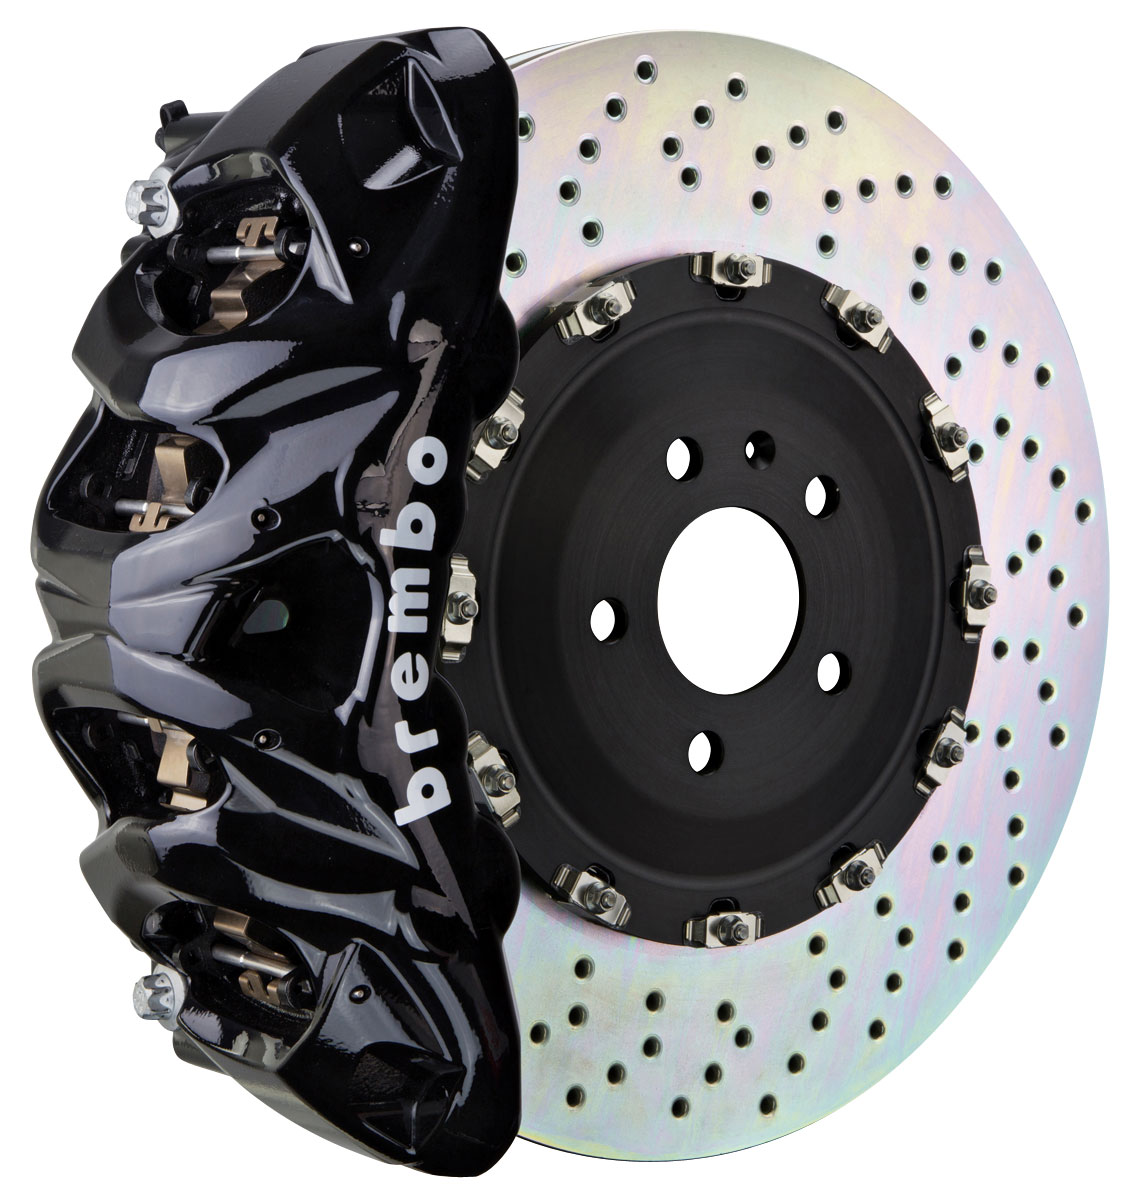 Brake Set, Brembo, 2007-19 Escalade/ESV/EXT, Front, 2pc 412mm Rtrs, 8P Calipers